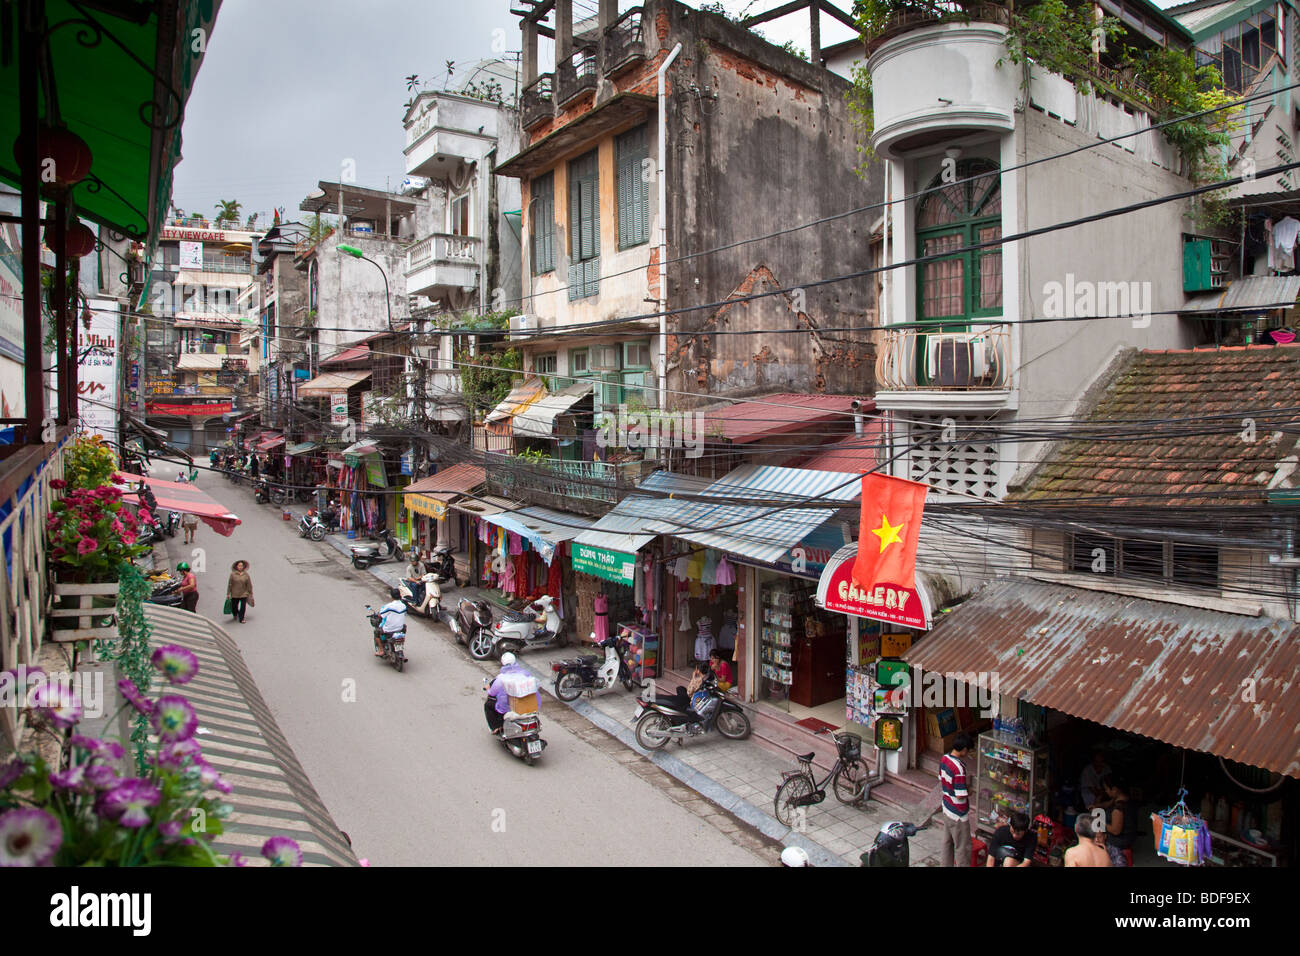 A street scene in Hanoi, North Vietnam - Stock Image